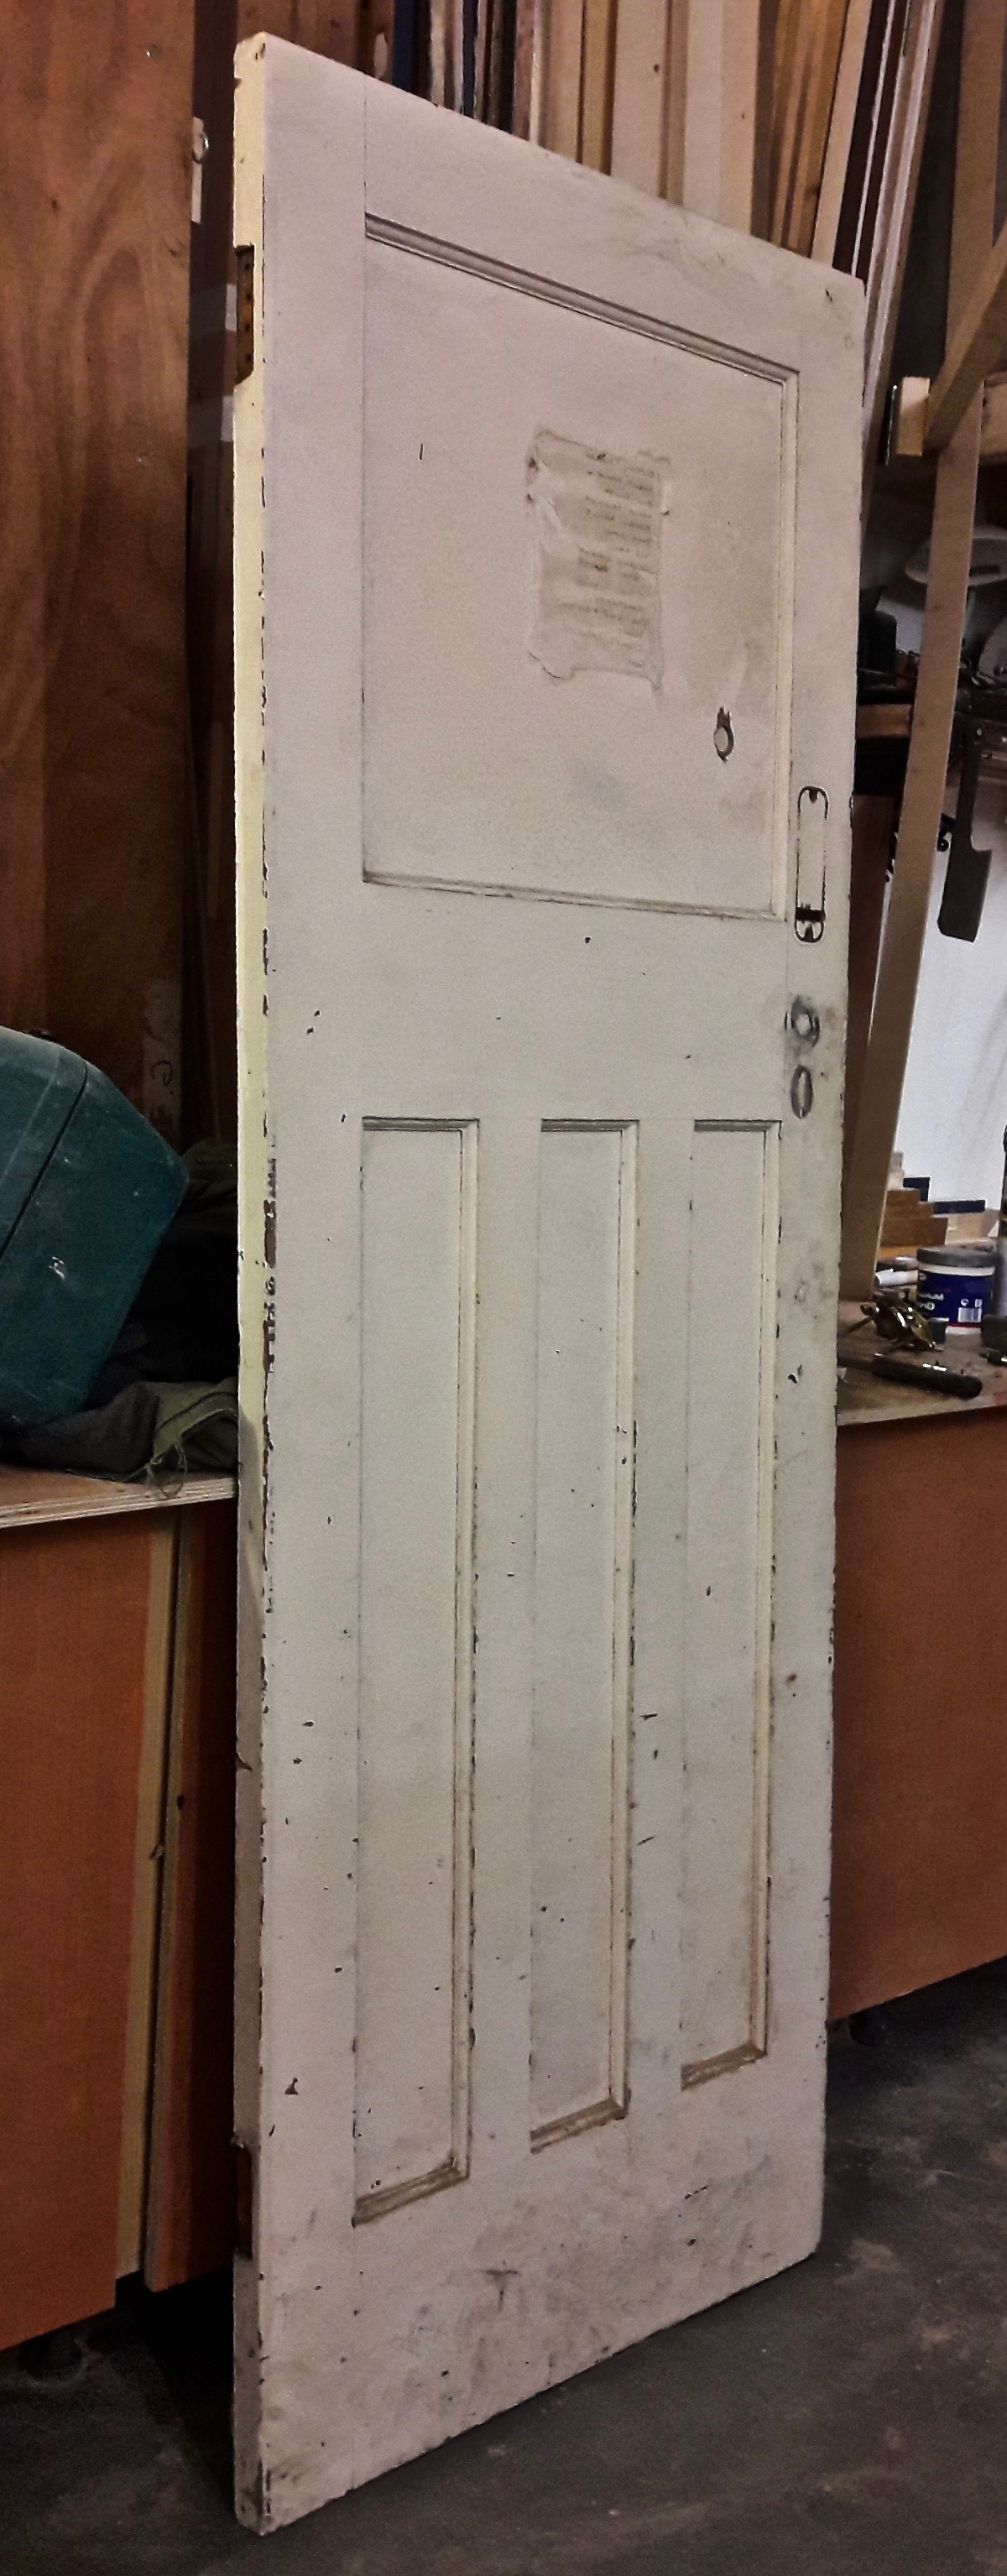 Stripped door